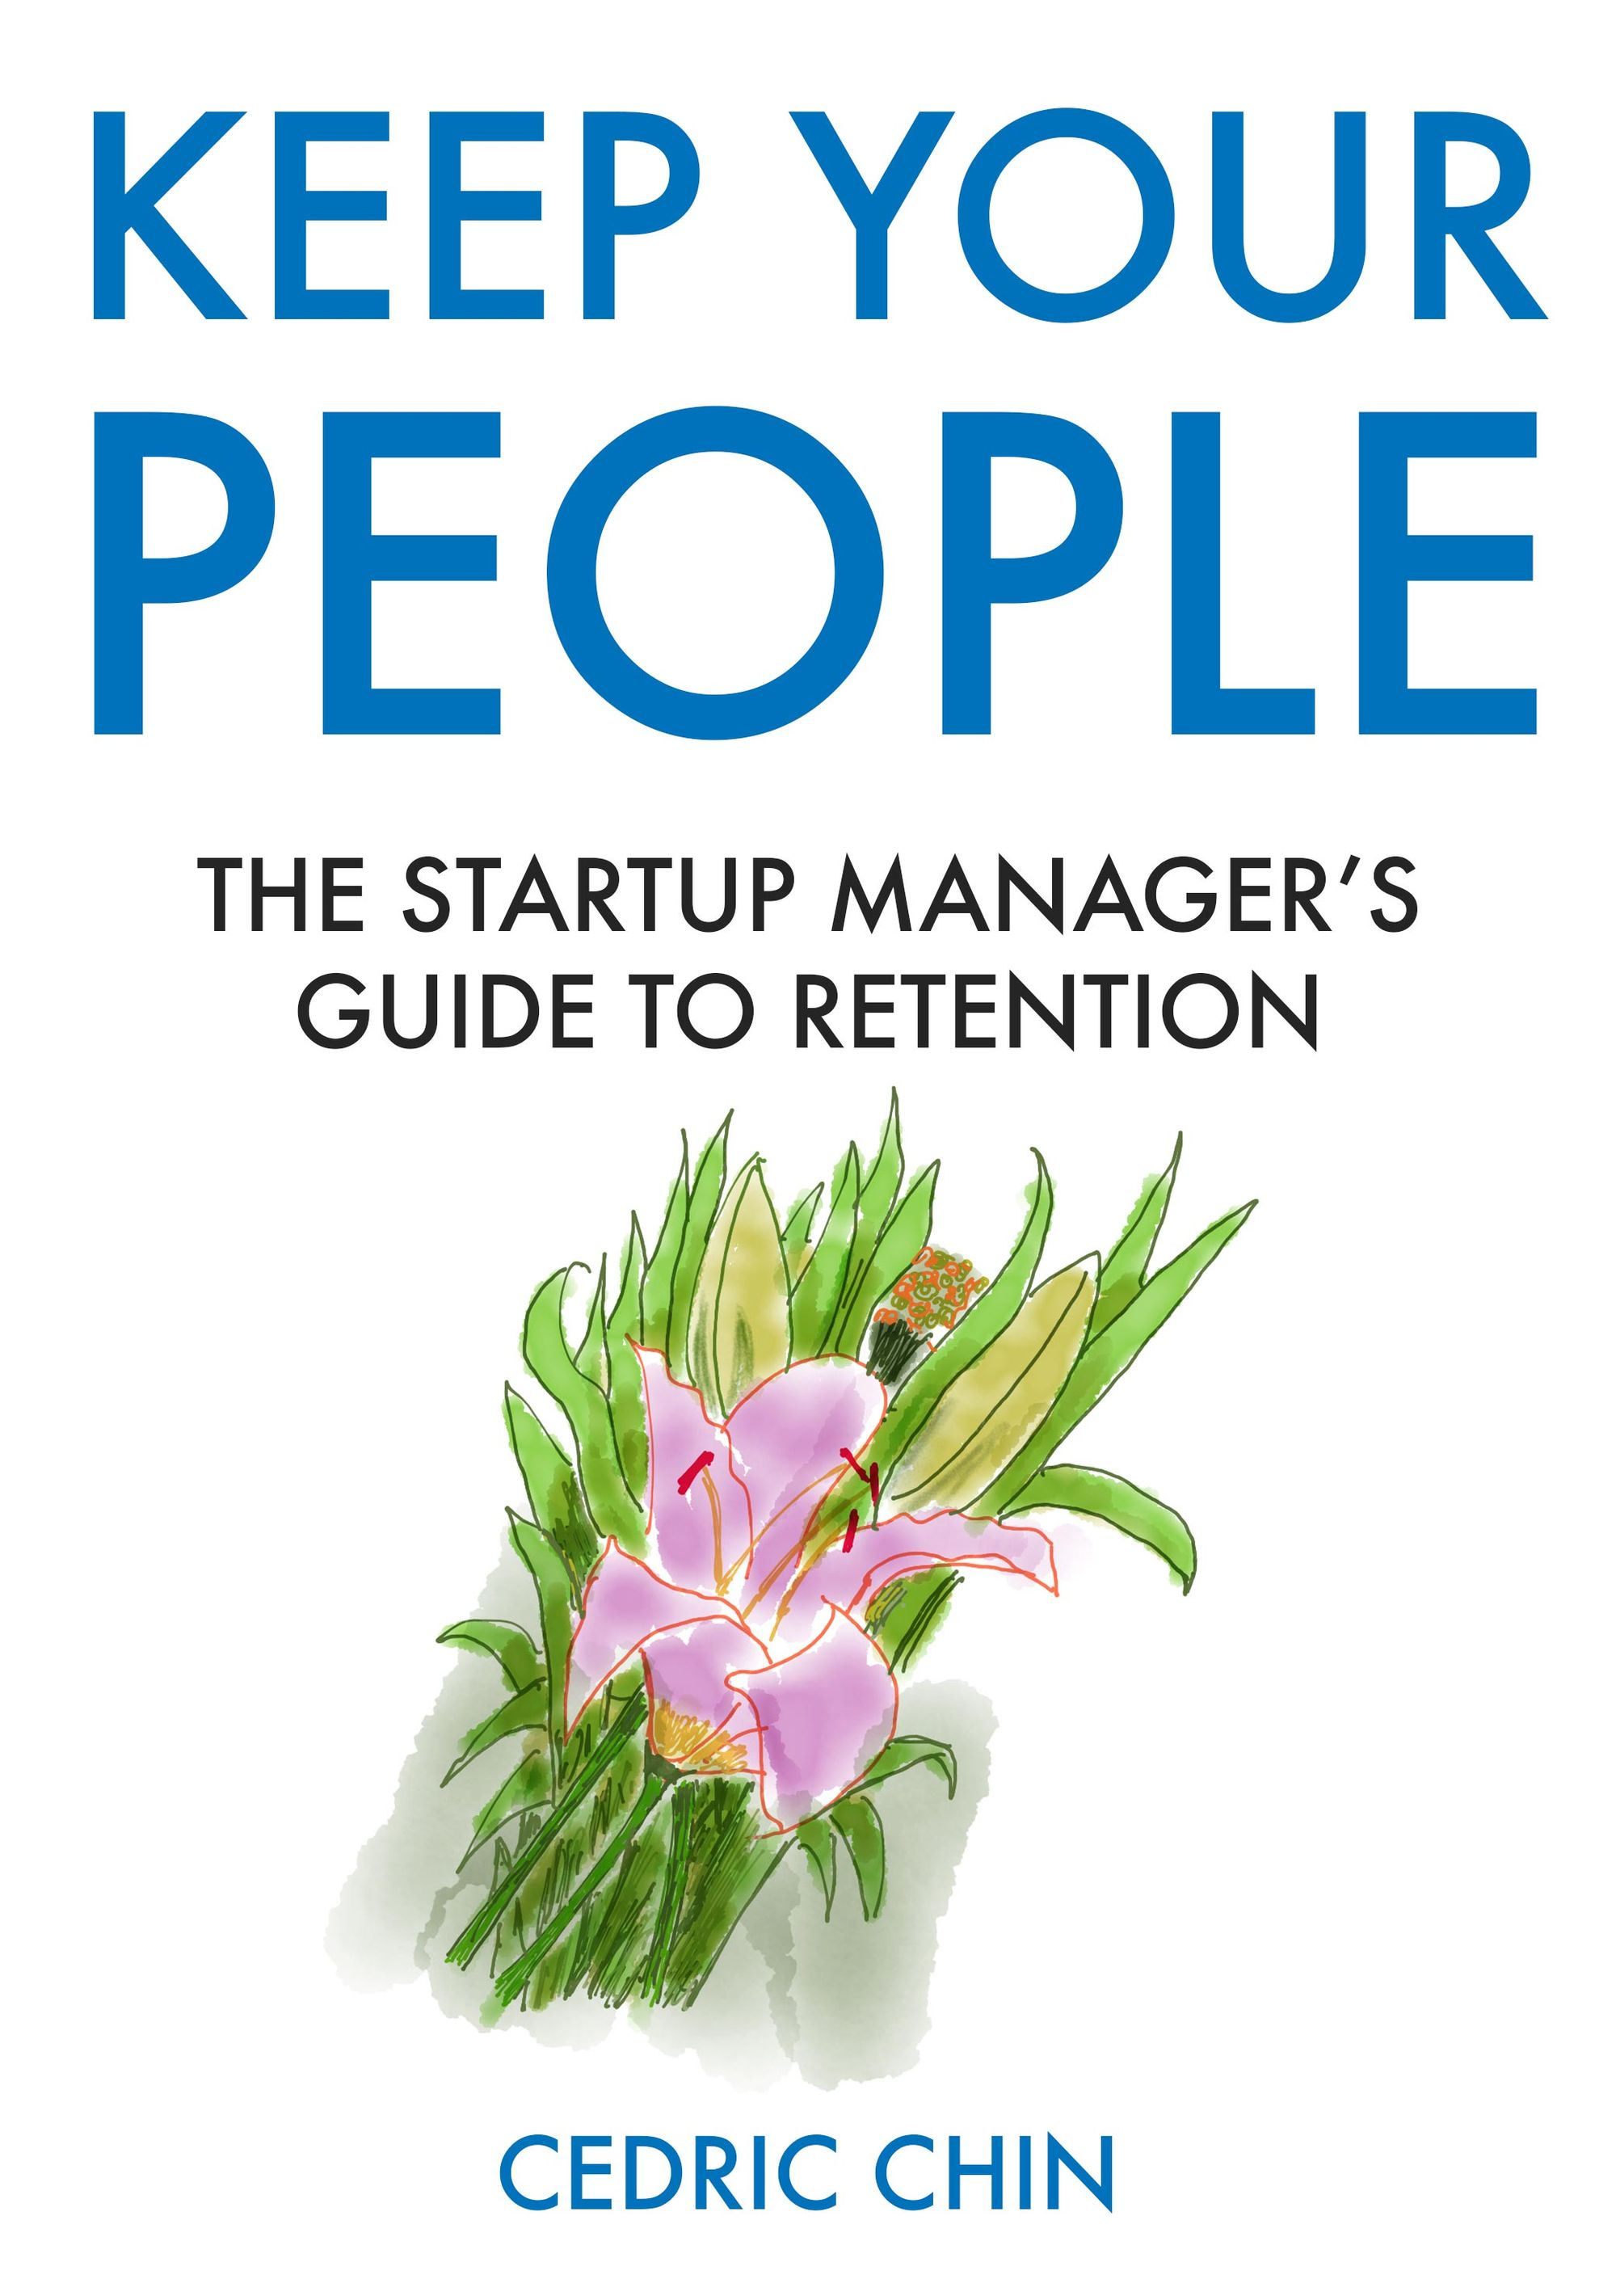 Book cover of Keep Your People